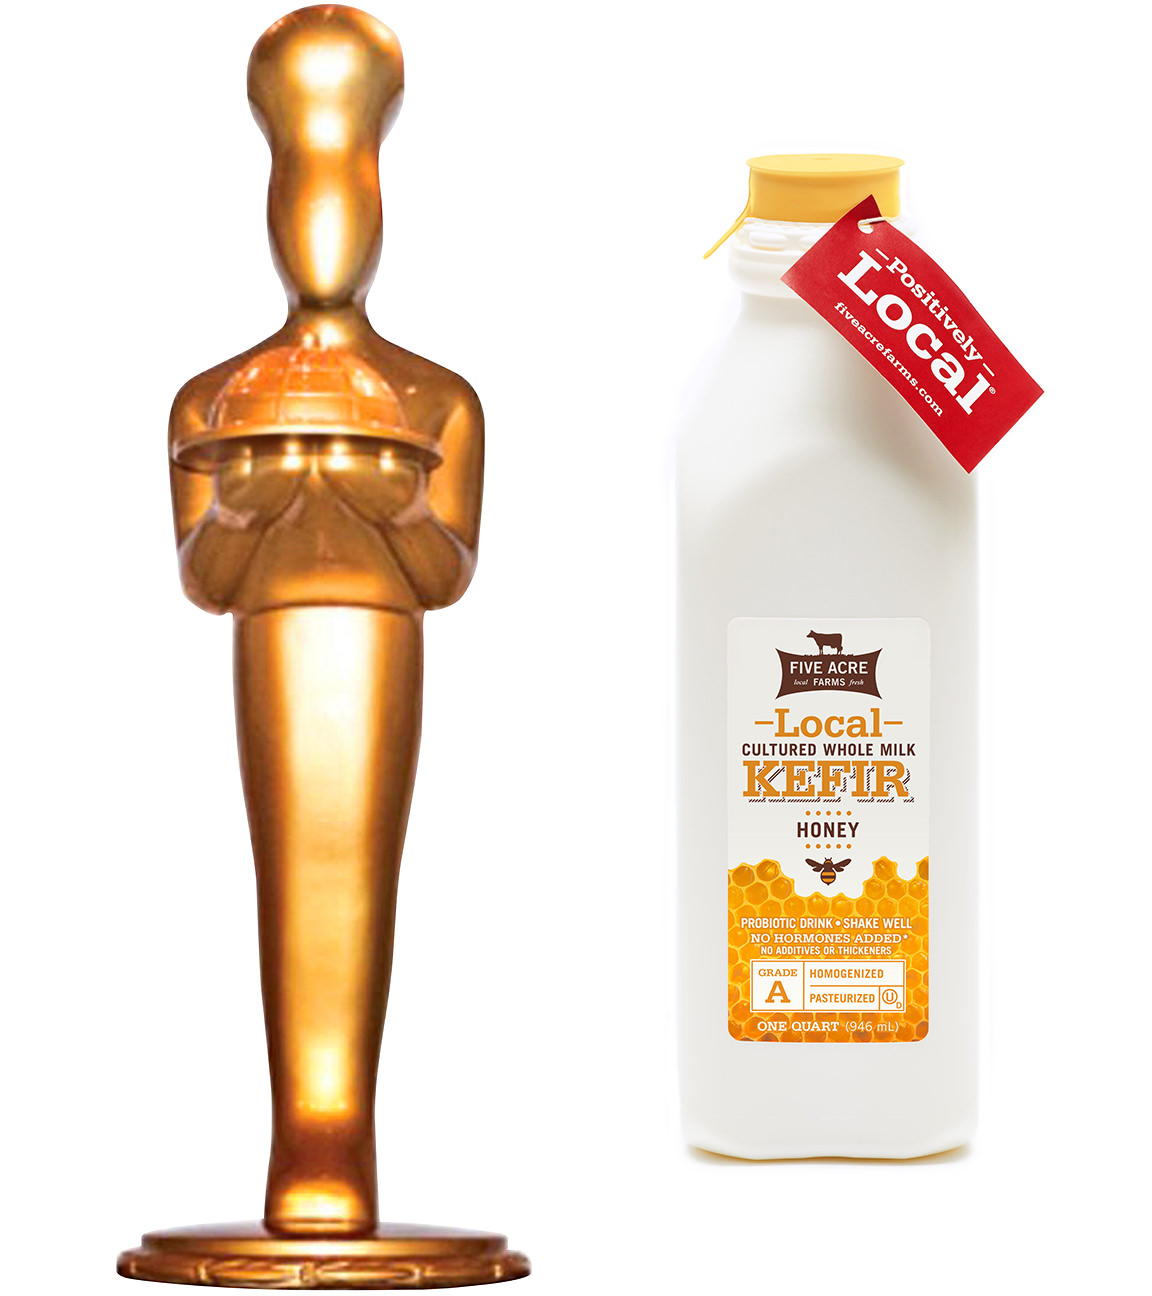 Award winning kefir - Sofi Award